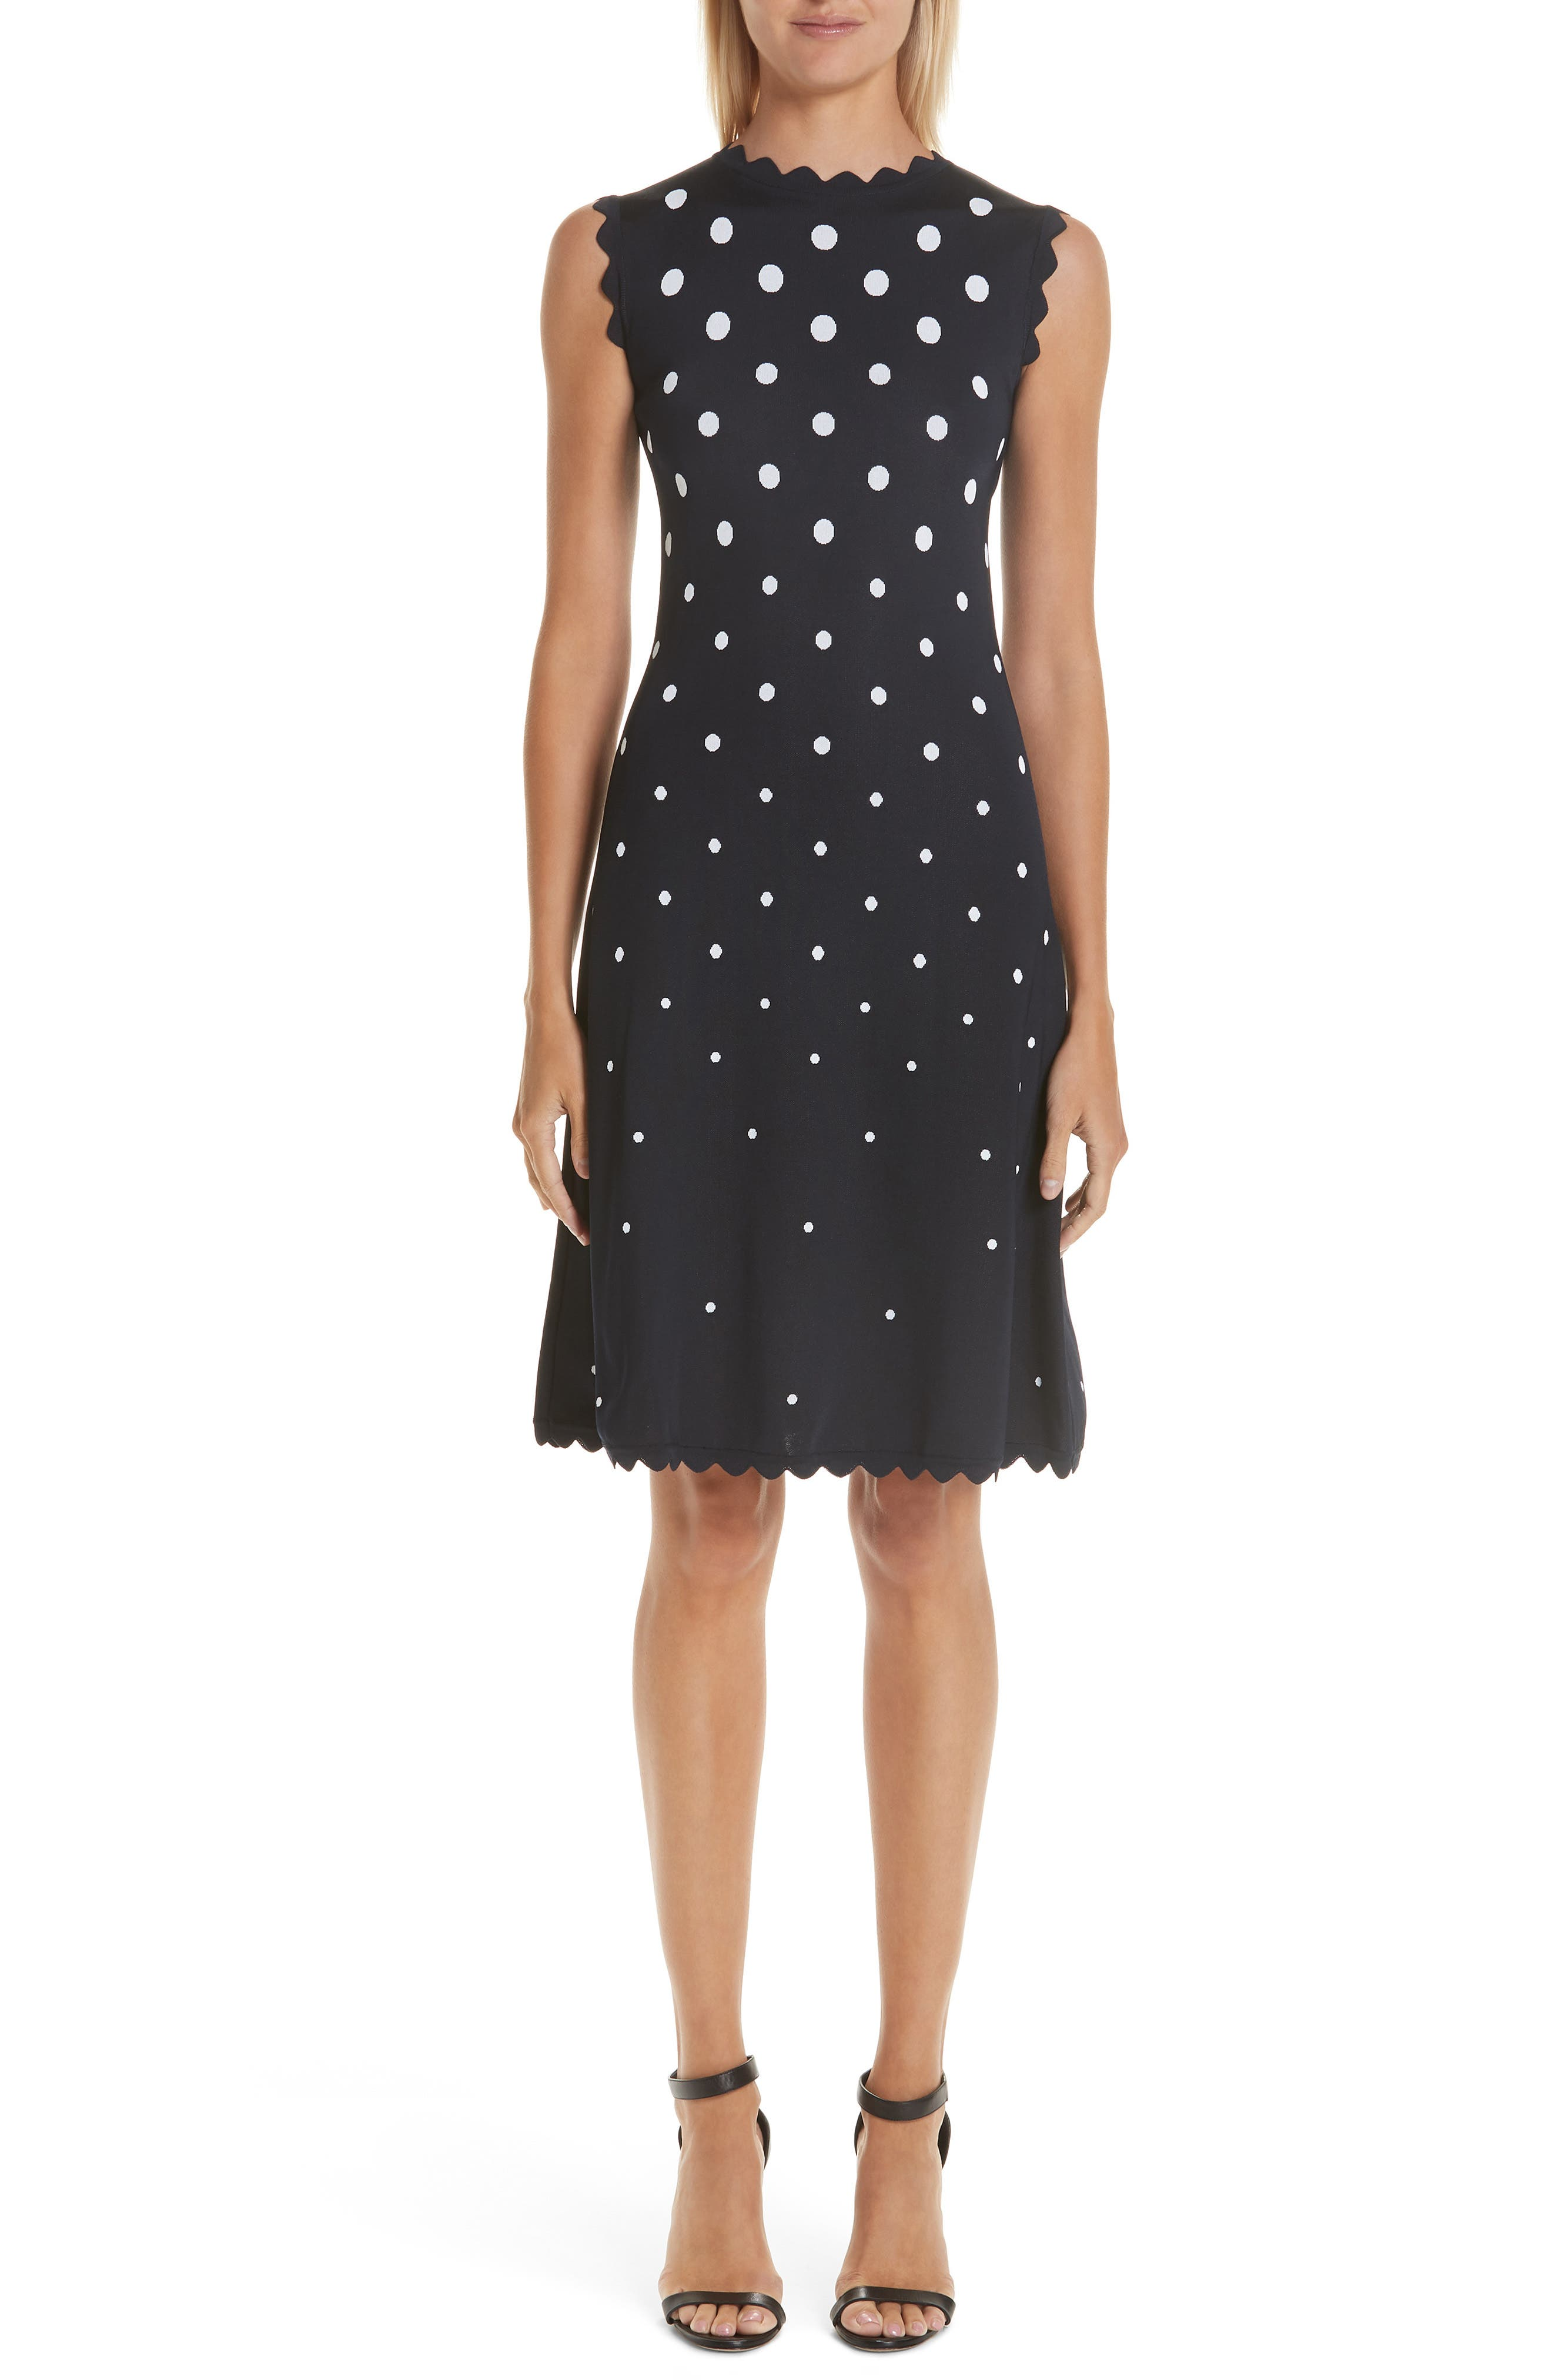 High-Neck Sleeveless Scalloped Fit-And-Flare Polka-Dot Dress in Nvw-Navy/ White